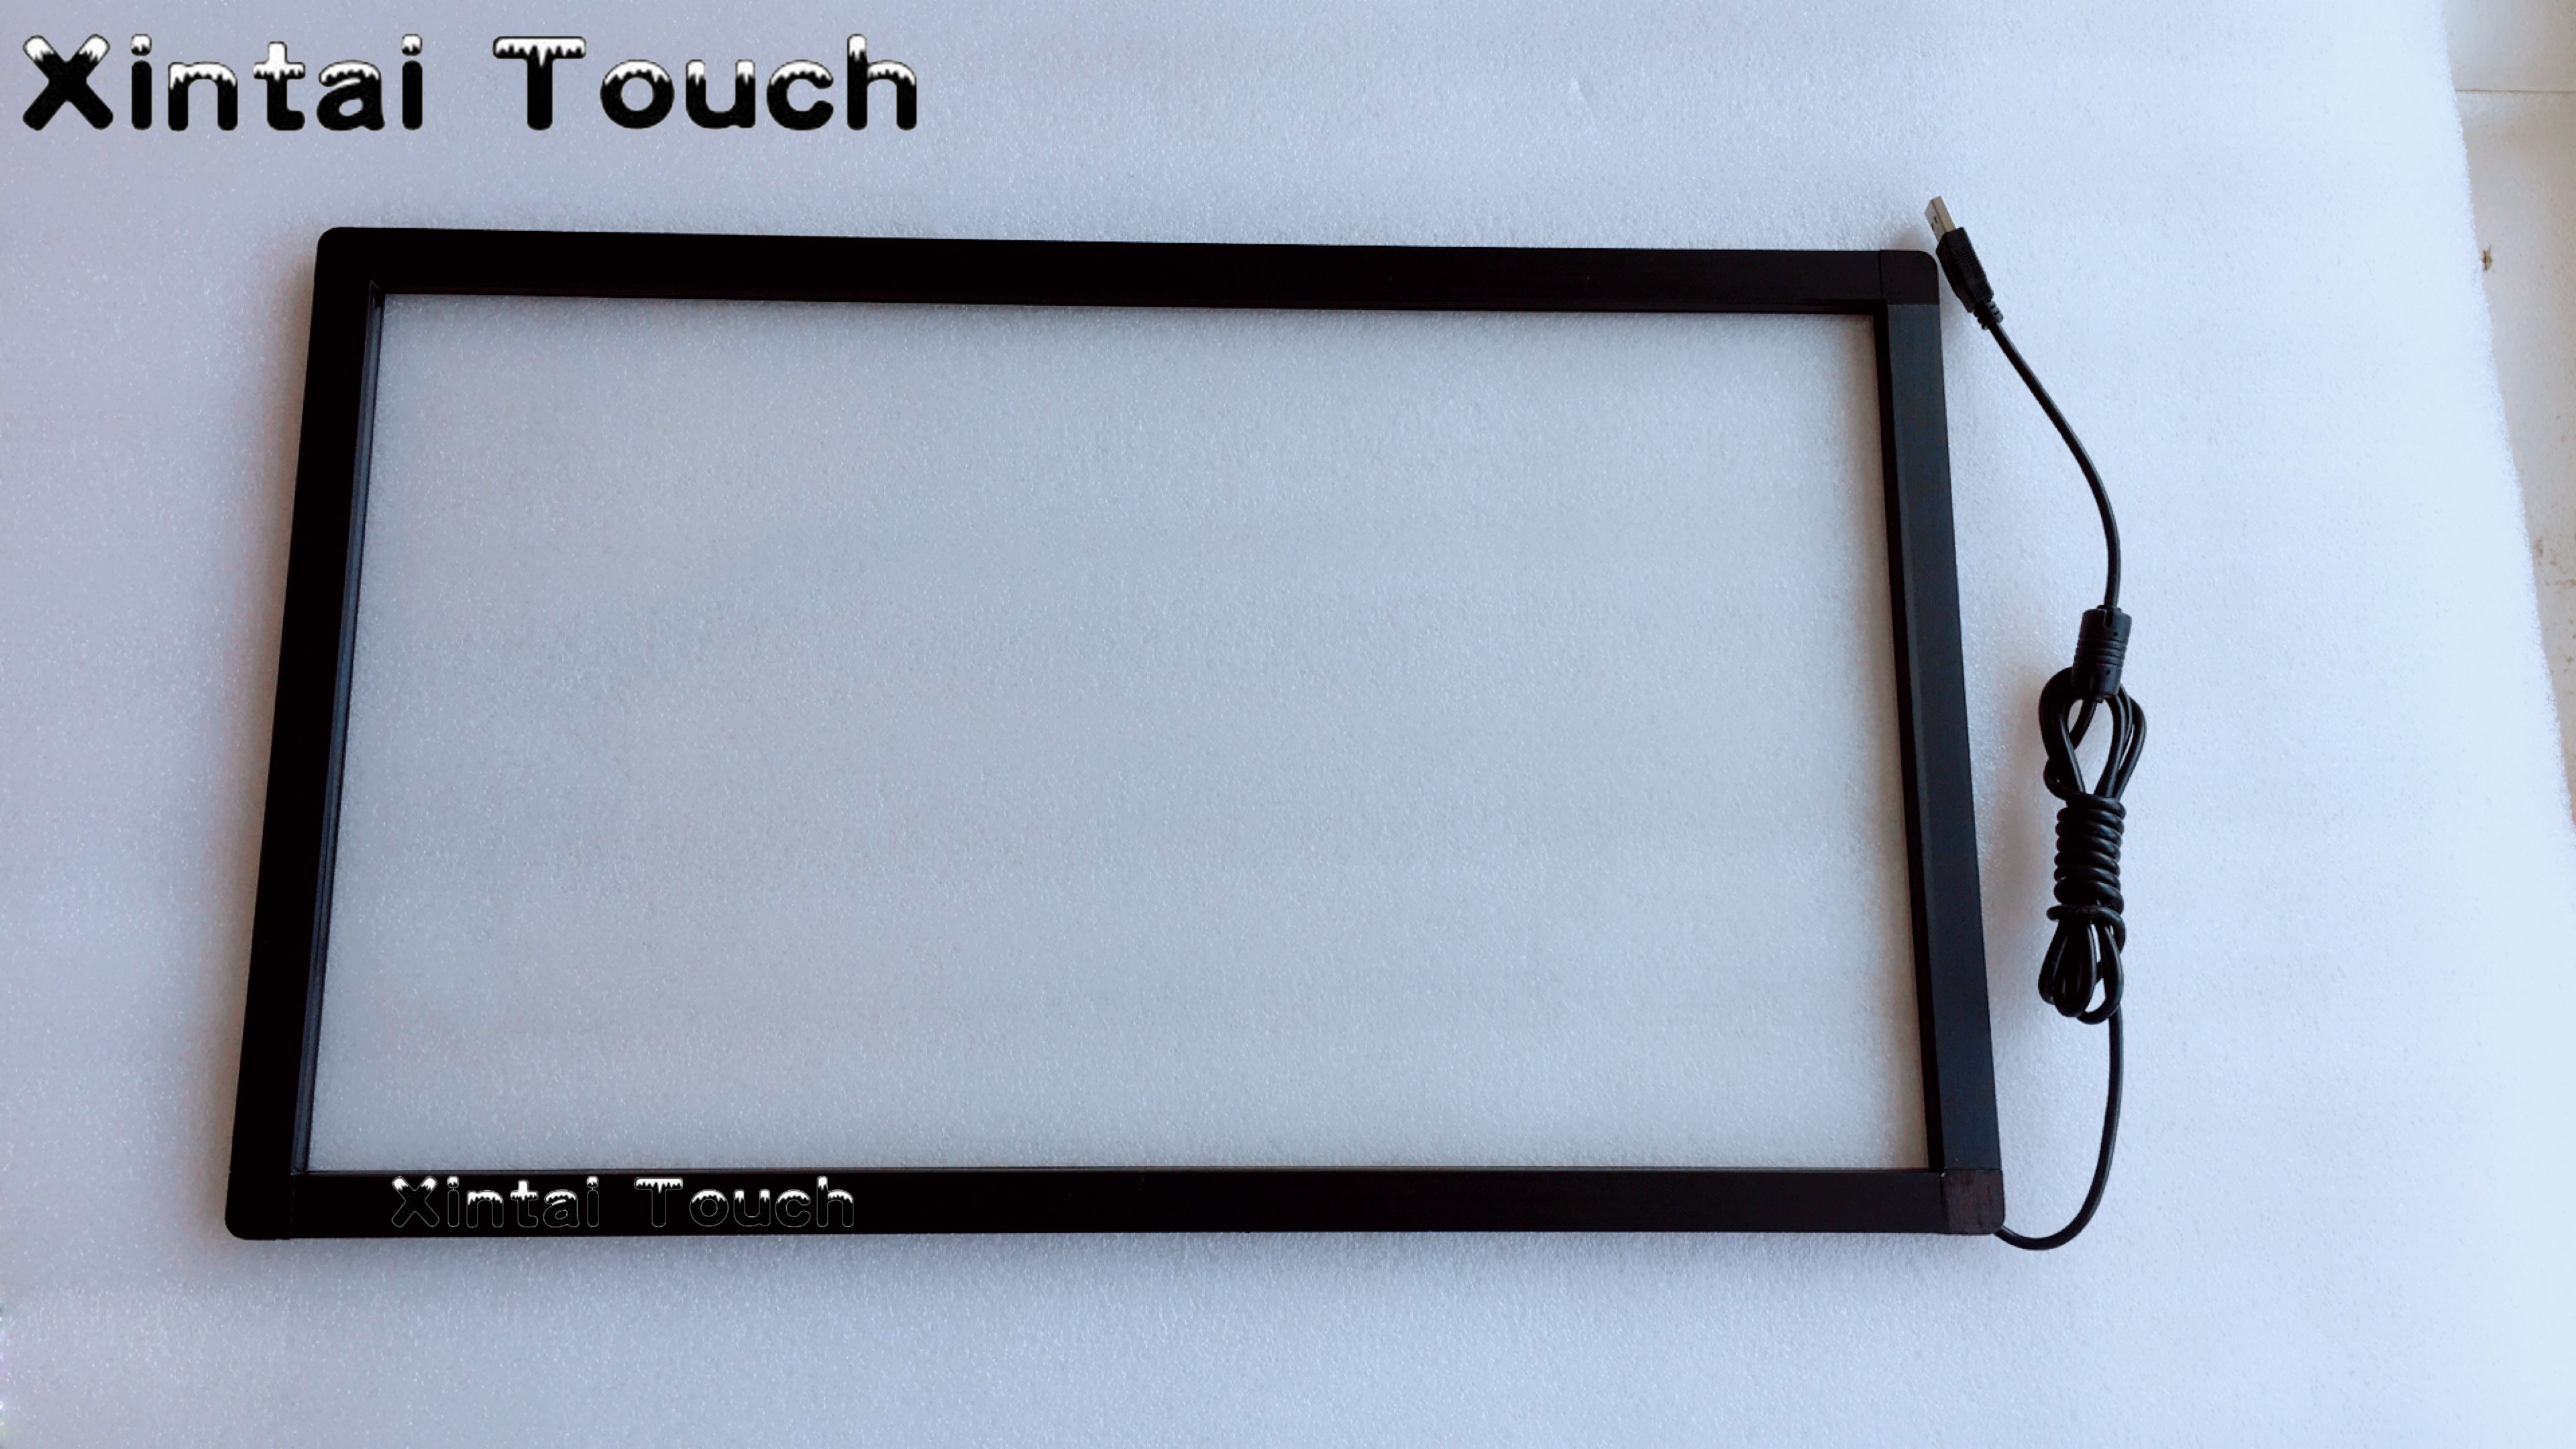 Free Shipping! 40 IR touch frame 10 touch points Infrared LCD Touch Screen overlay for interactive wall and touch tableFree Shipping! 40 IR touch frame 10 touch points Infrared LCD Touch Screen overlay for interactive wall and touch table